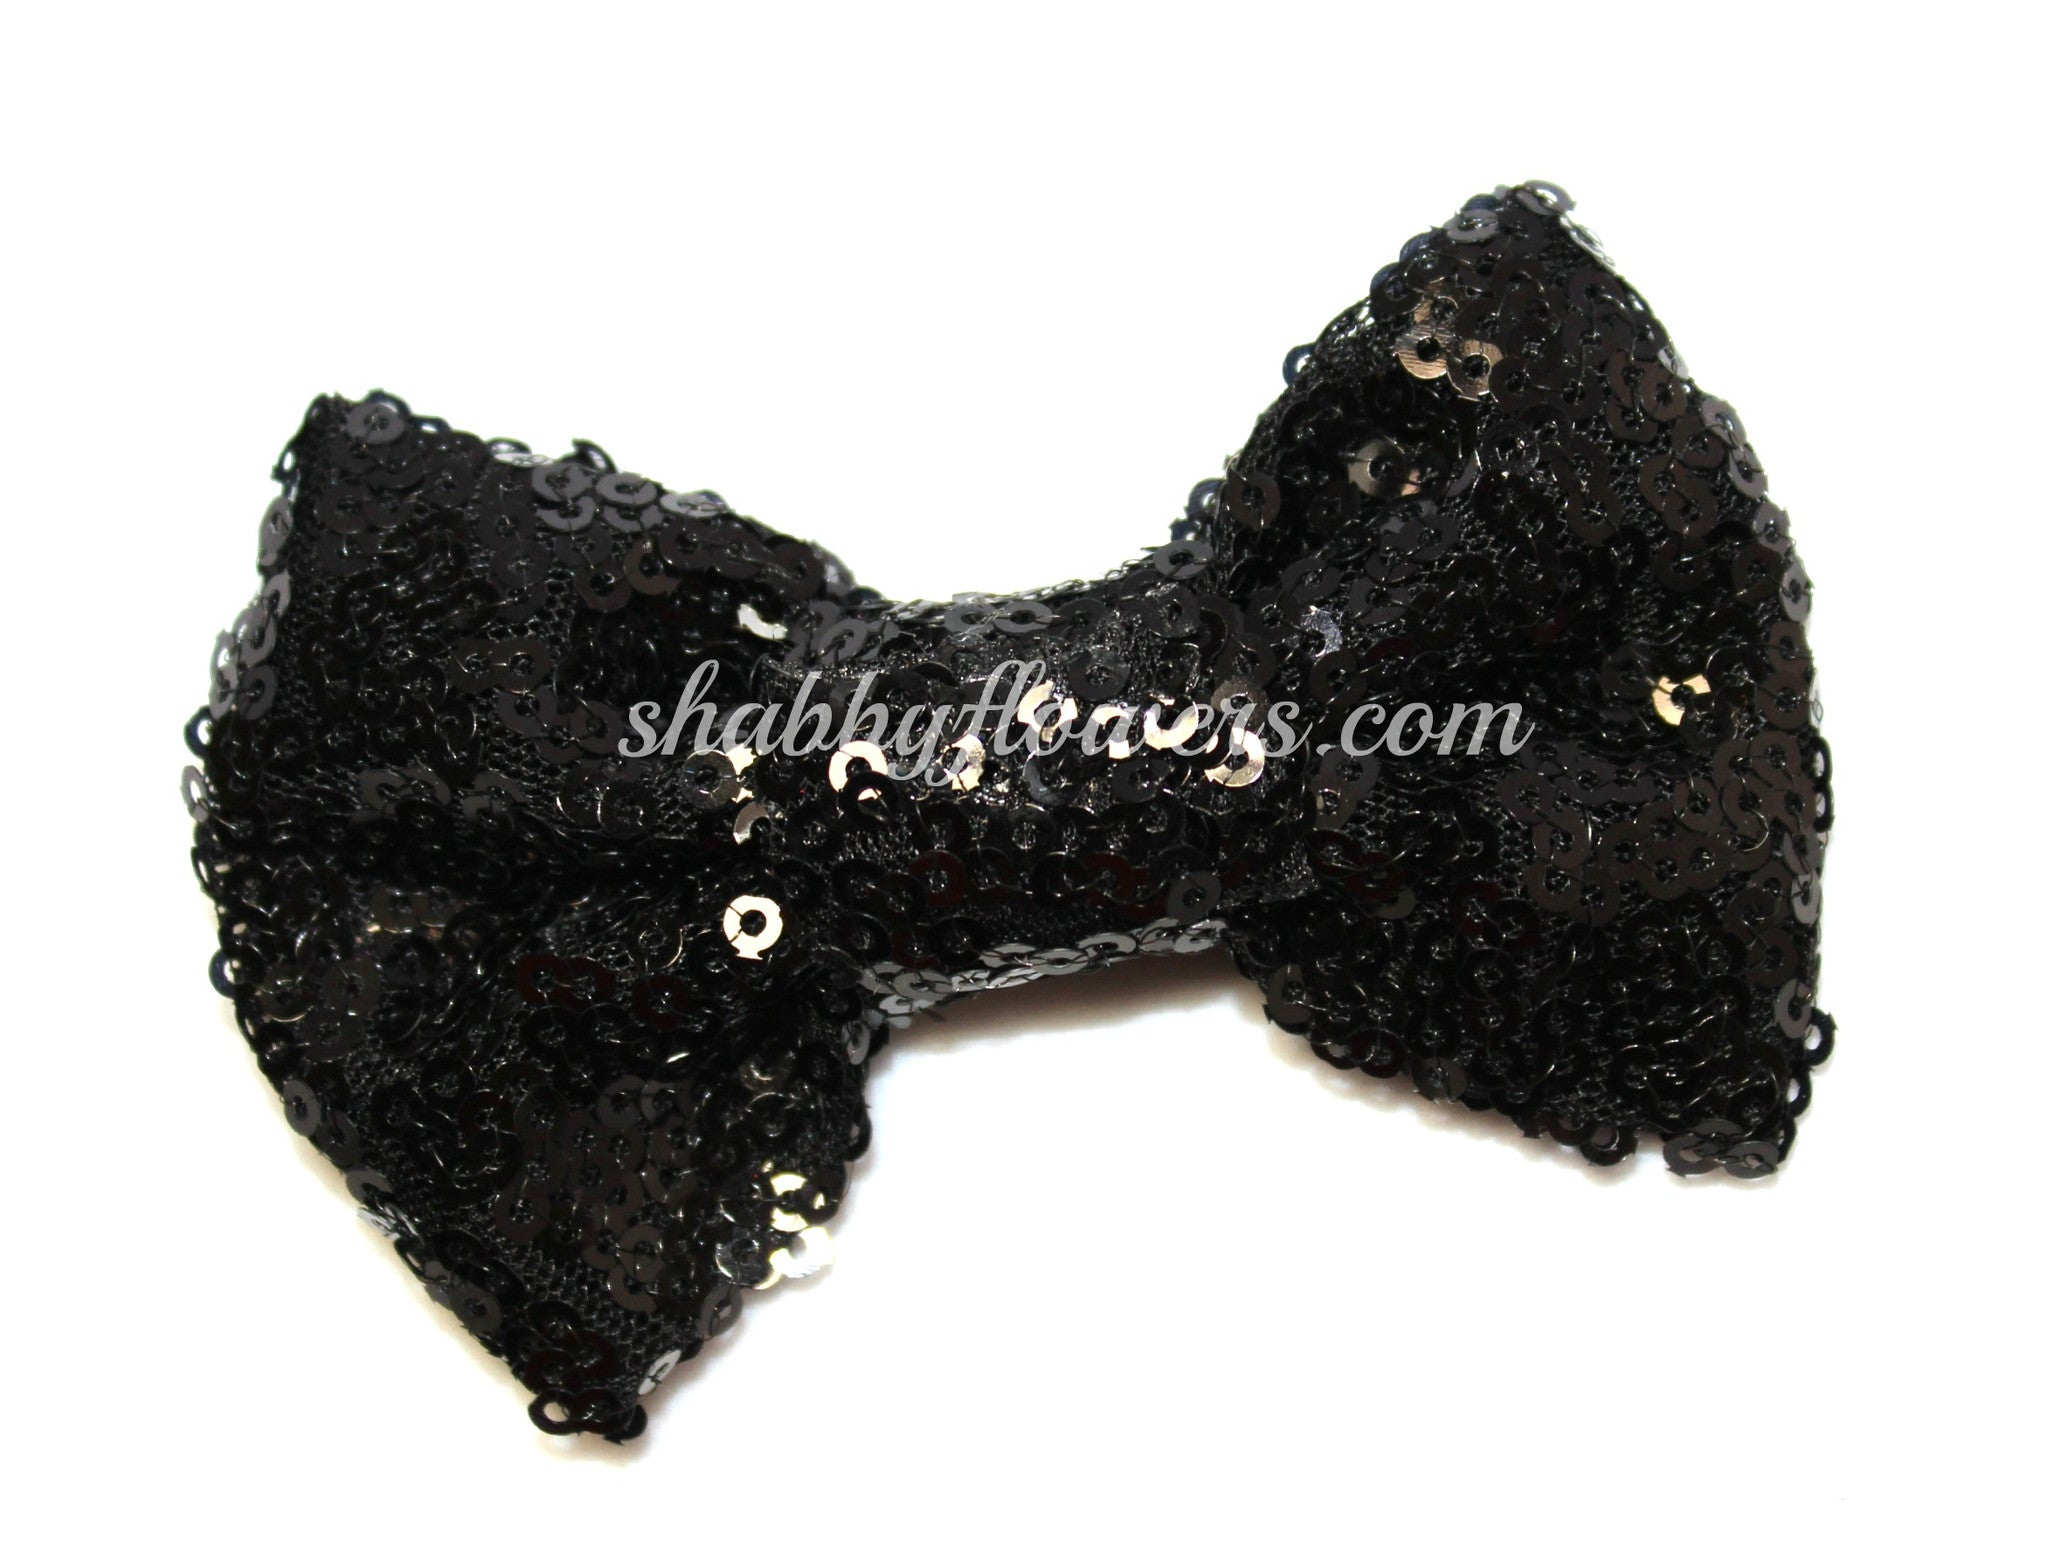 Medium Sequin Bow - Black - shabbyflowers.com